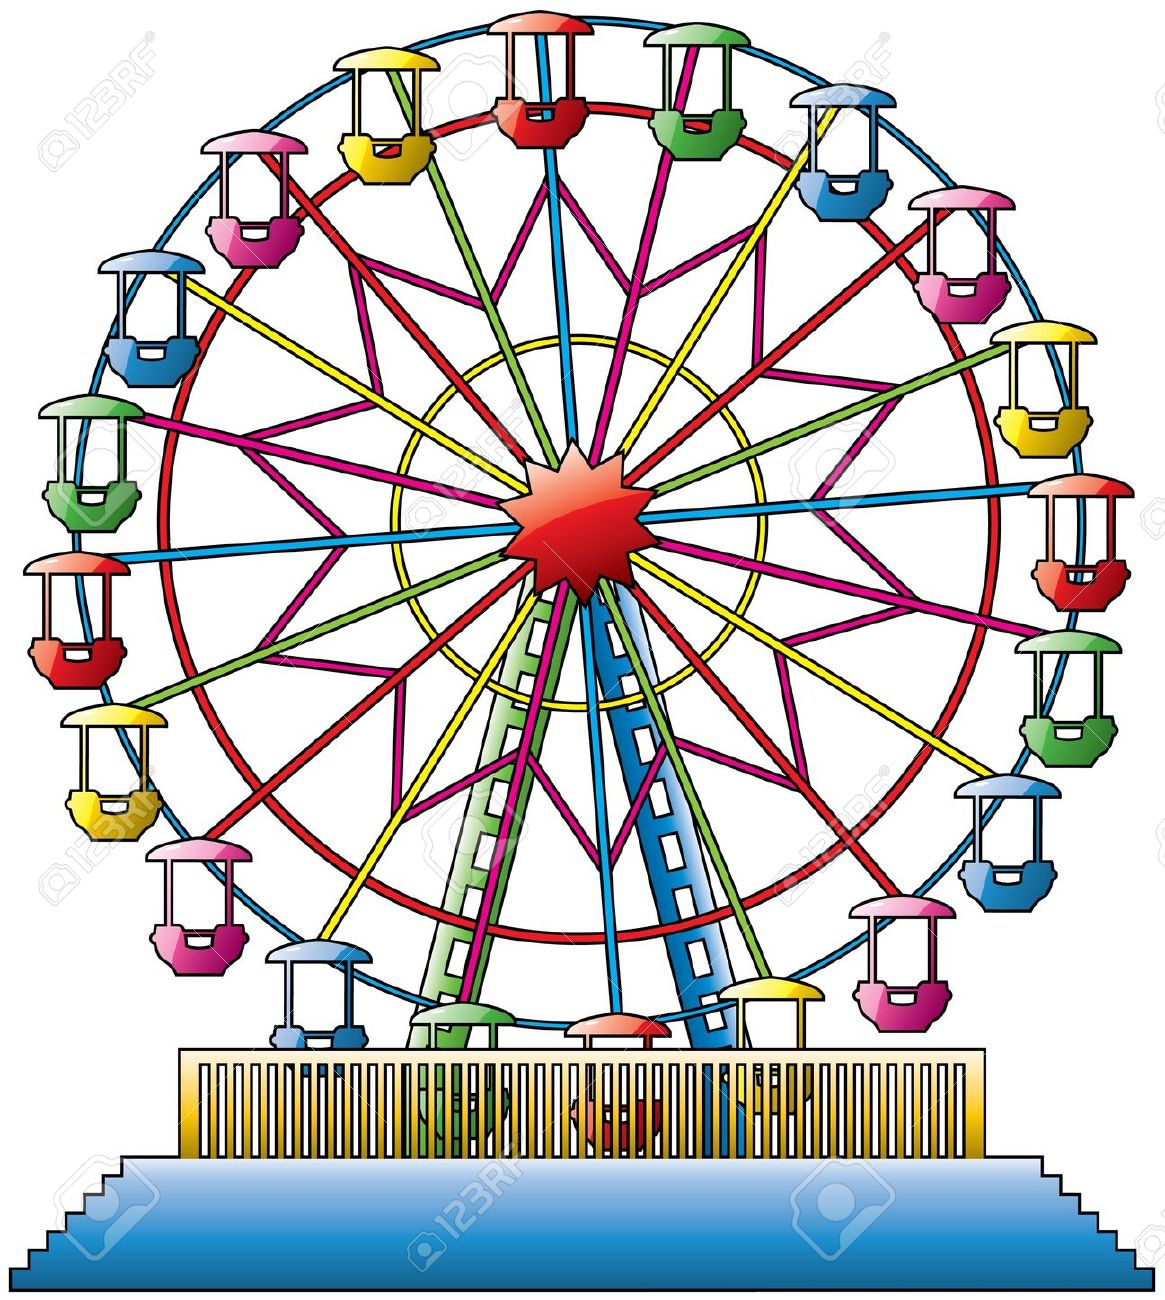 Ferris wheel car clipart.